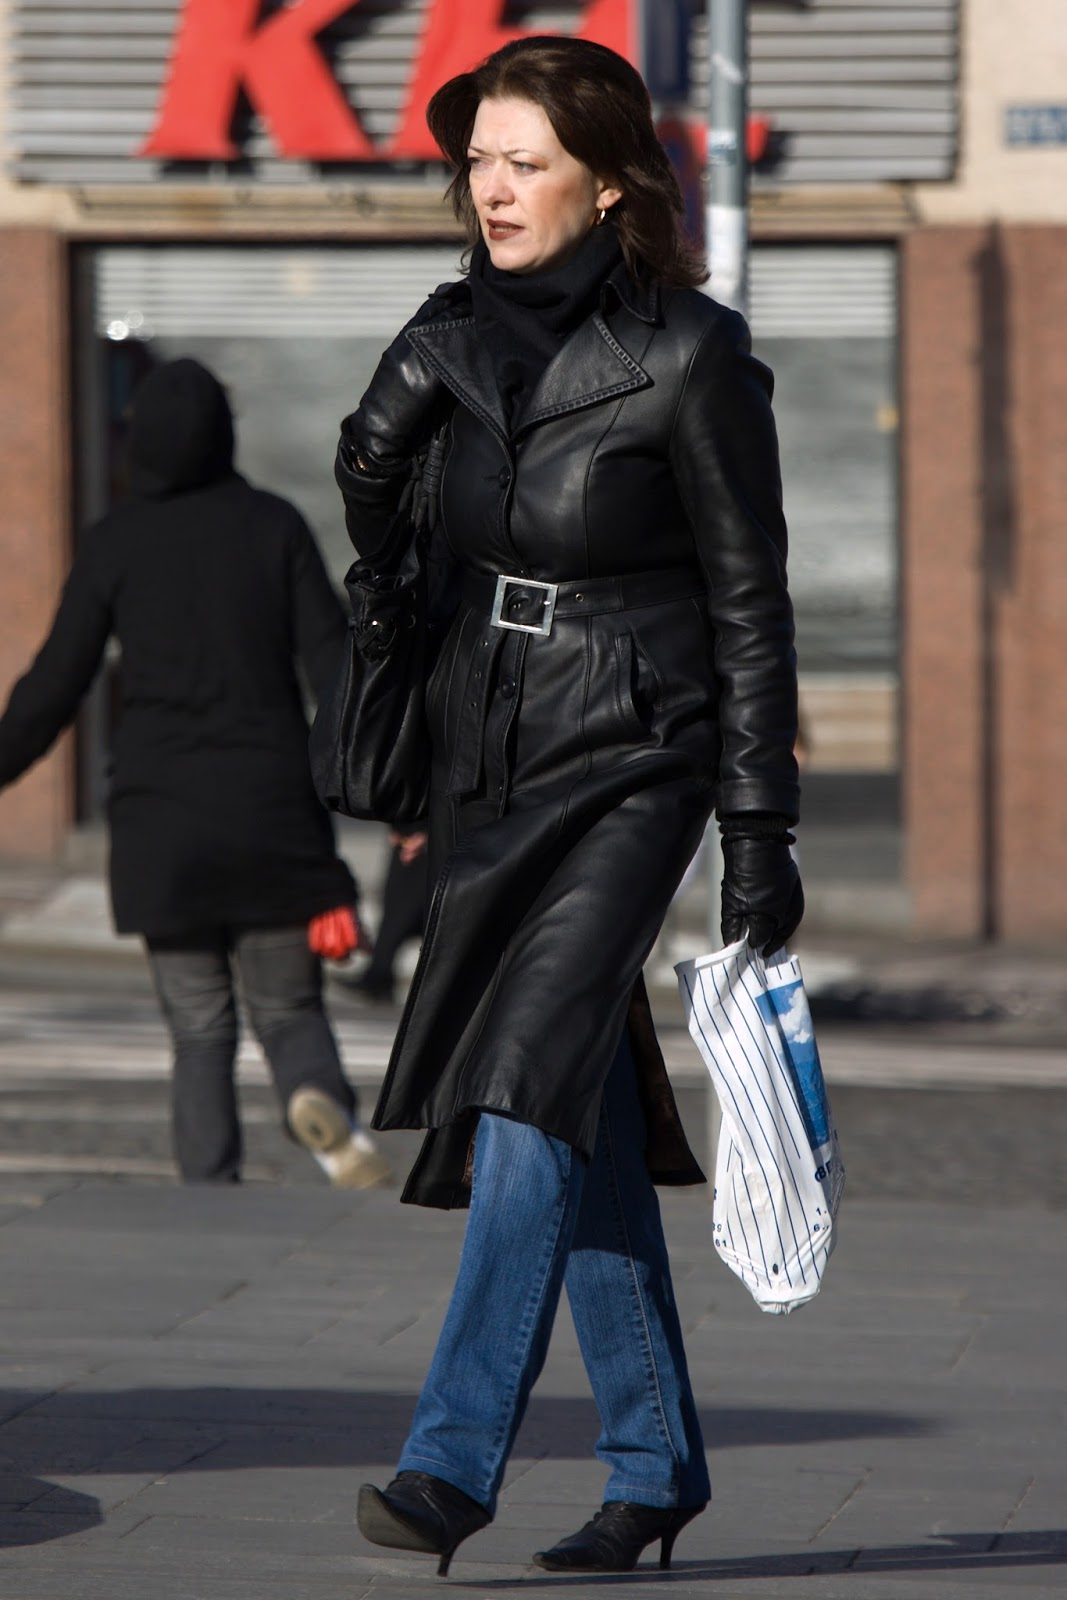 Leather jacket decade - A Pretty Woman In A Leather Coat